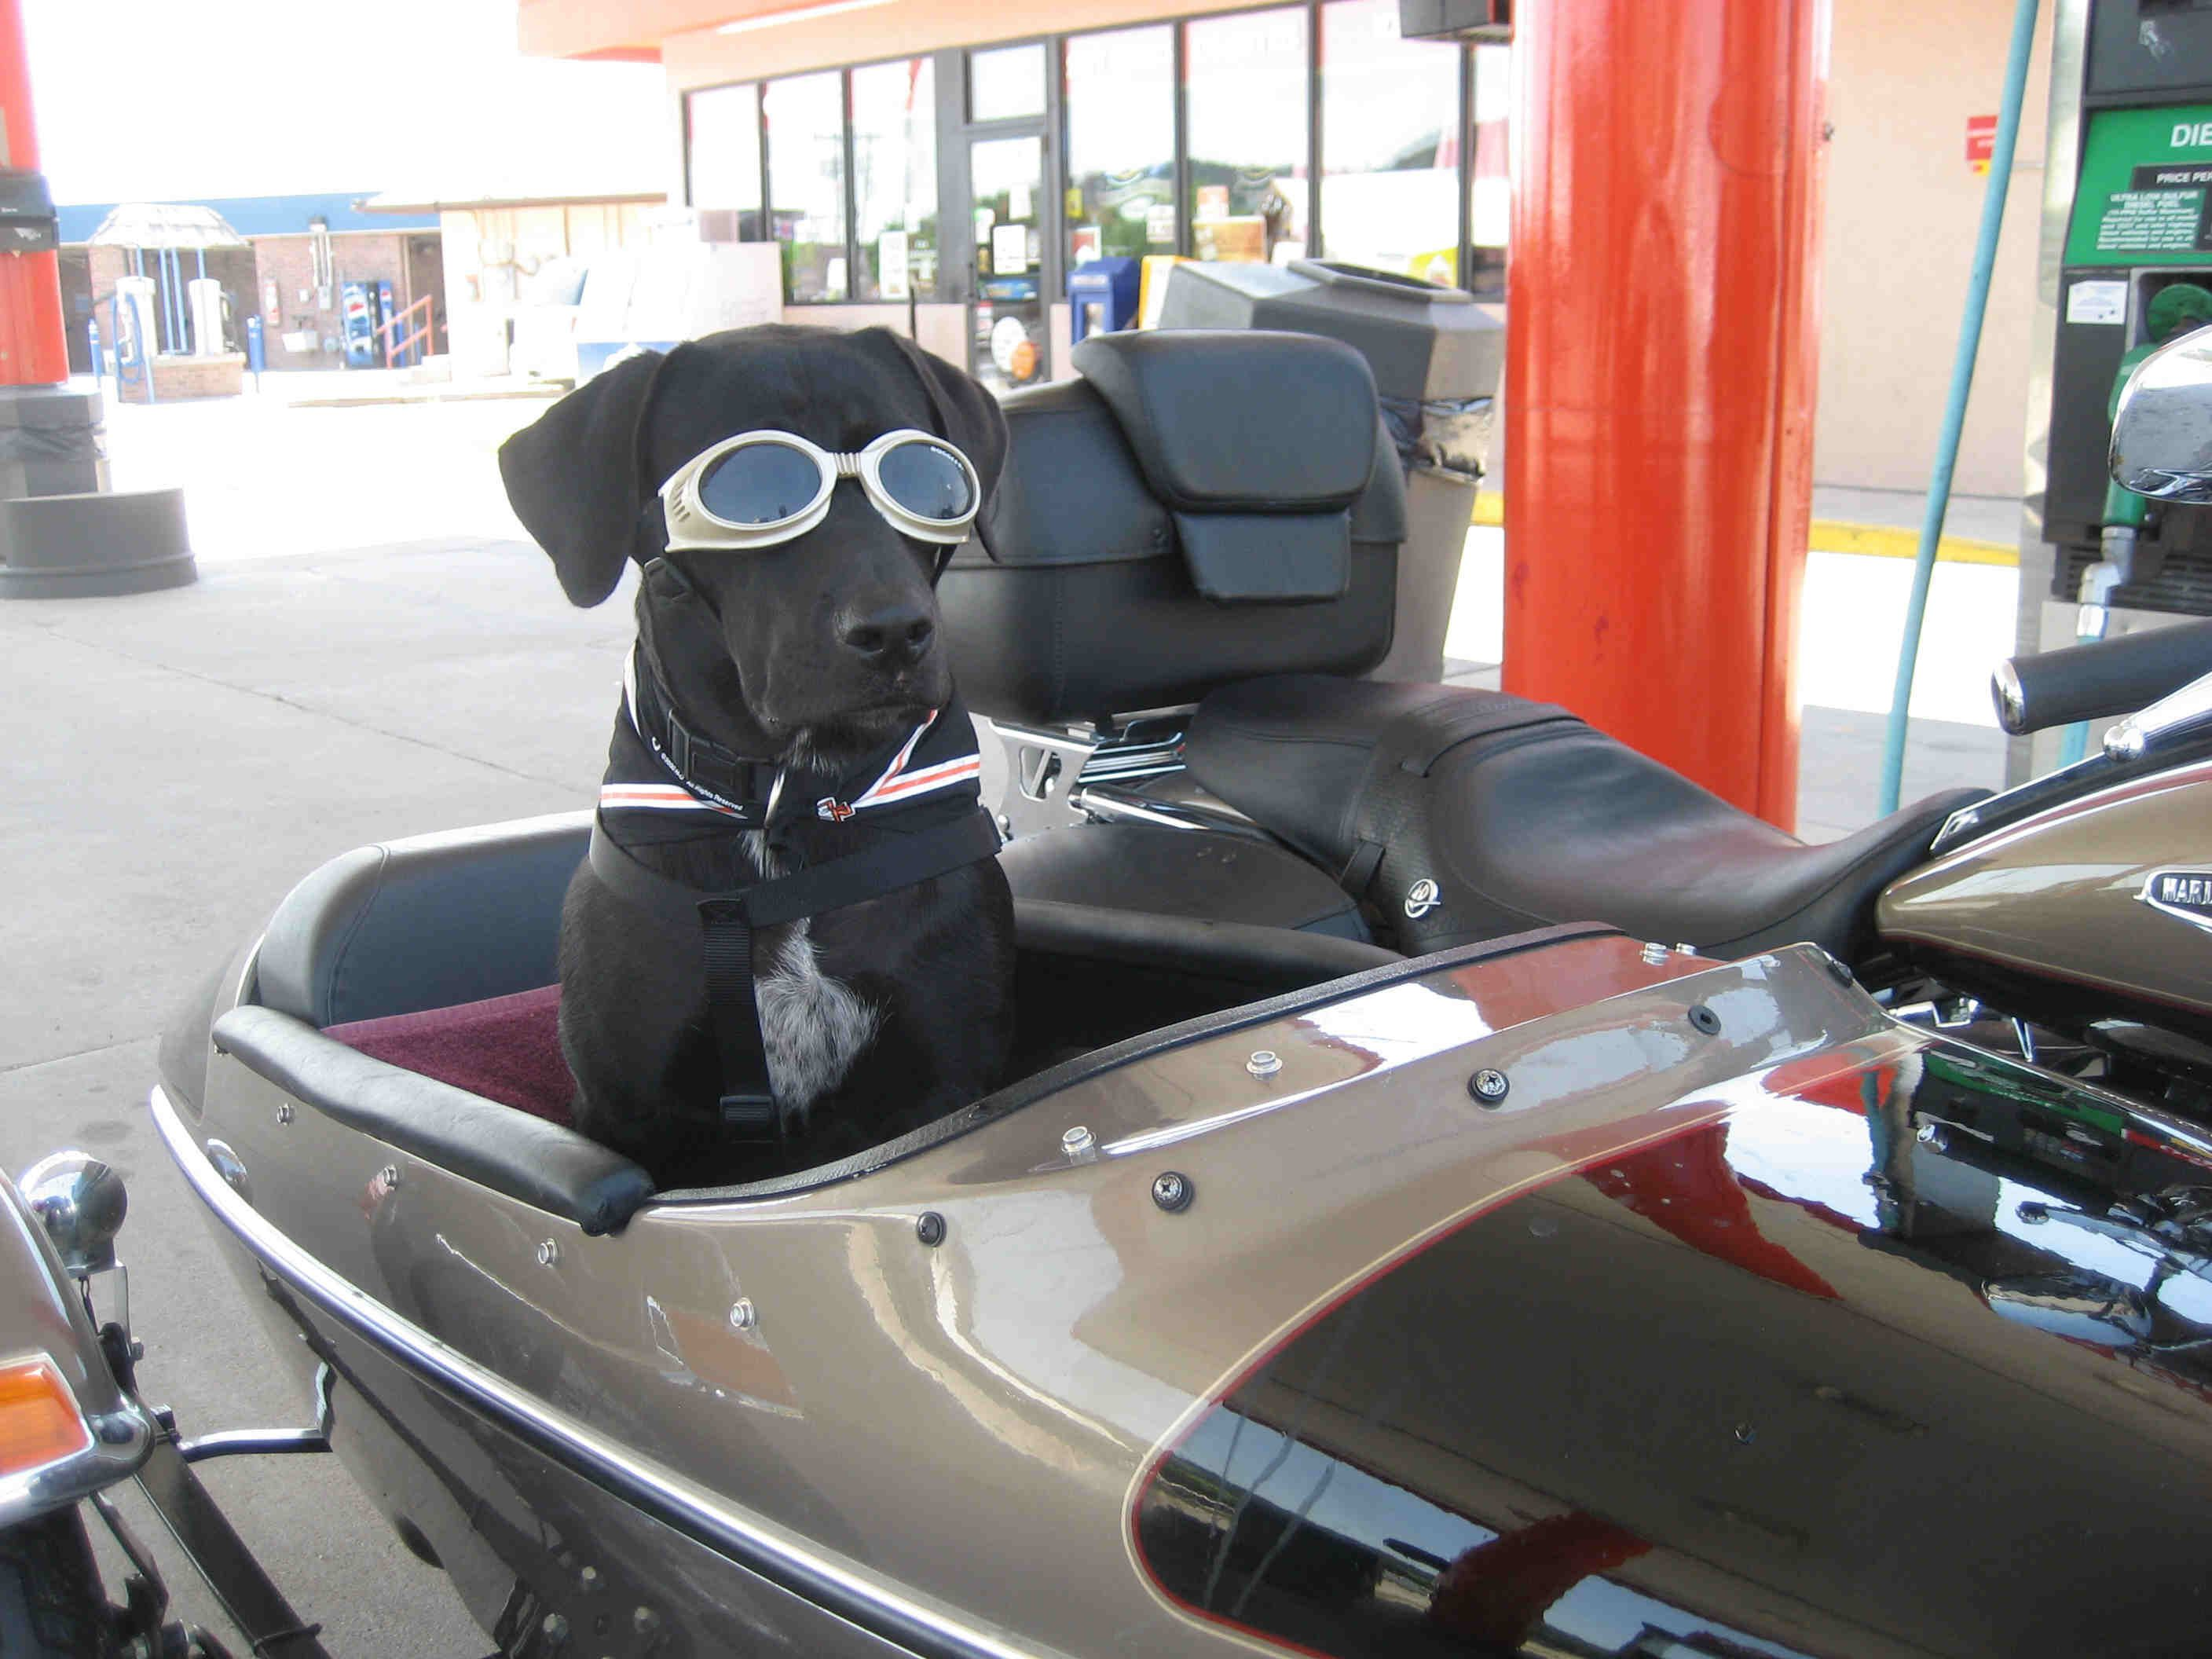 He S Got His Doggles On And Ready To Ride Biker Dog Touring Bike